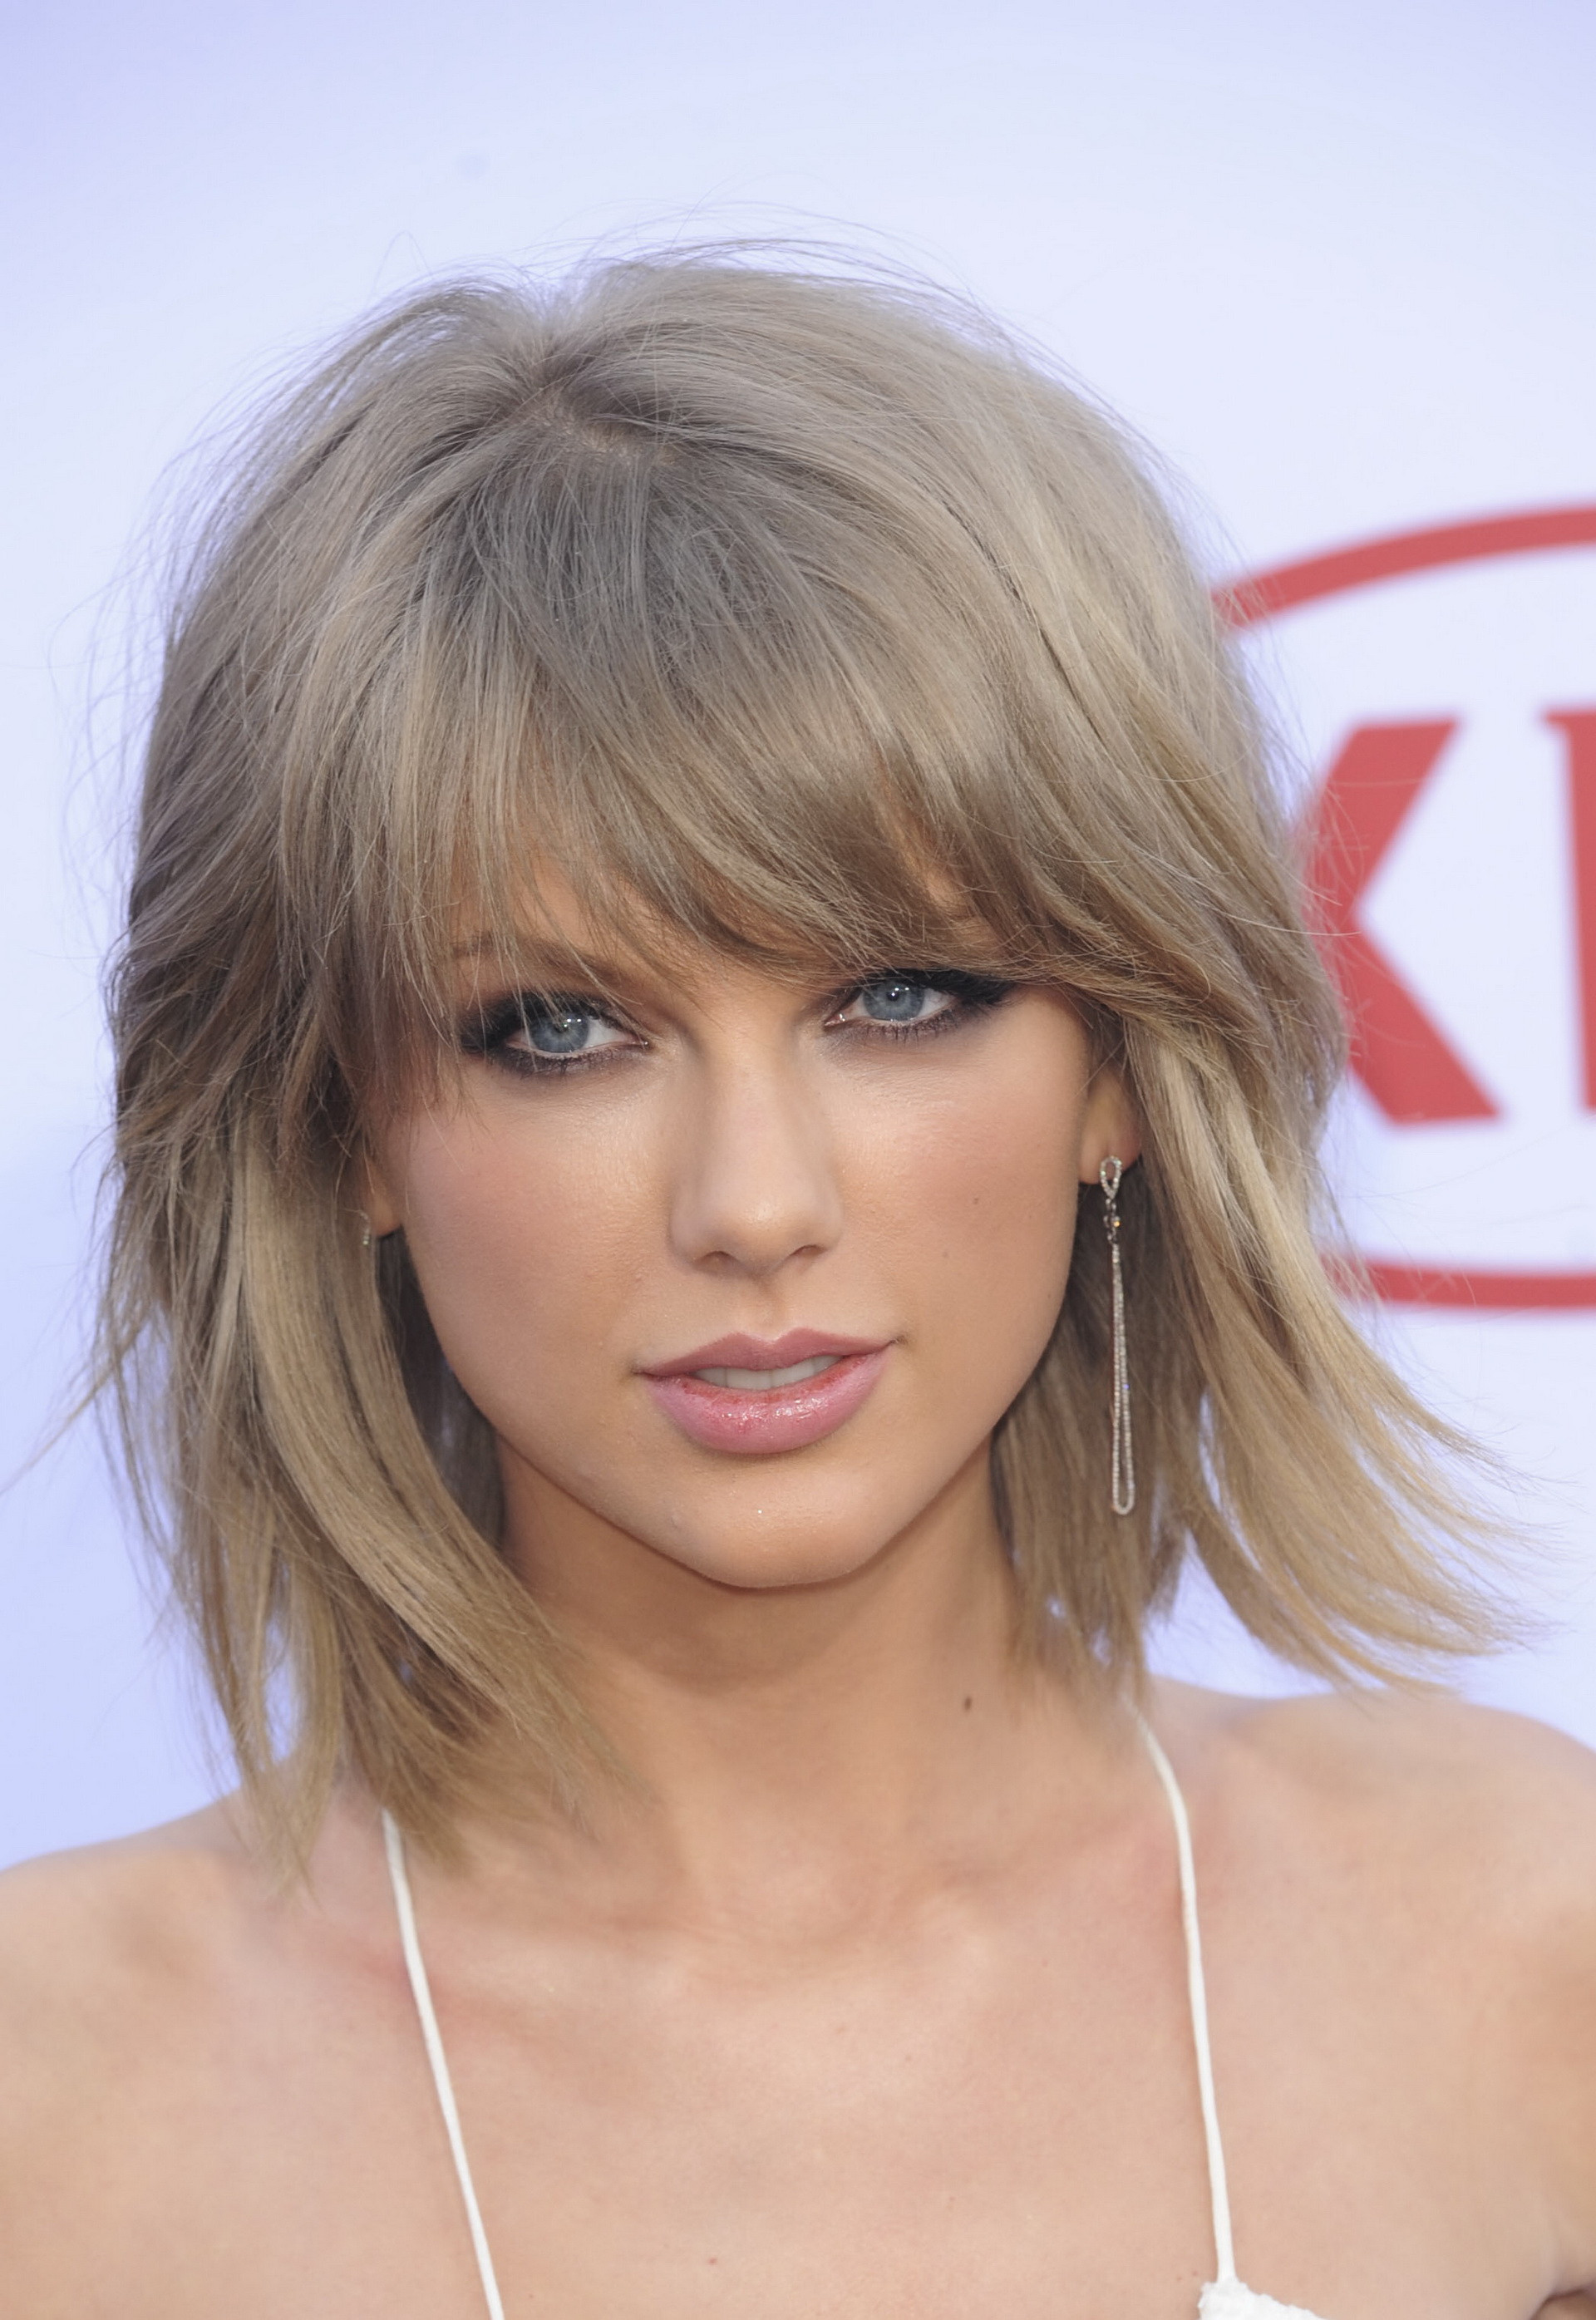 Hairstyles Female  Short hairstyles for women – 35 advice for choosing